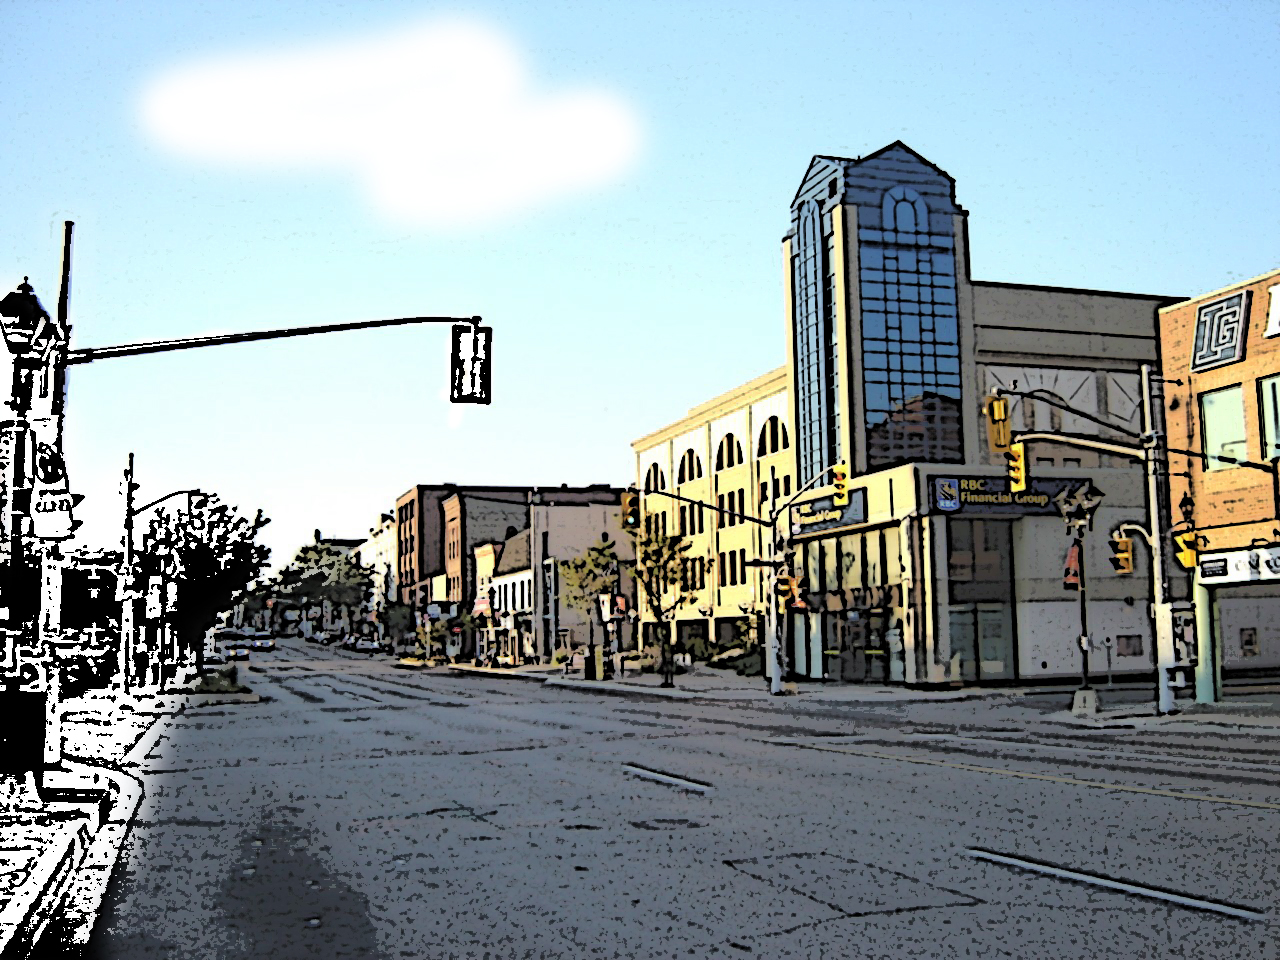 Sketch of Uptown Waterloo